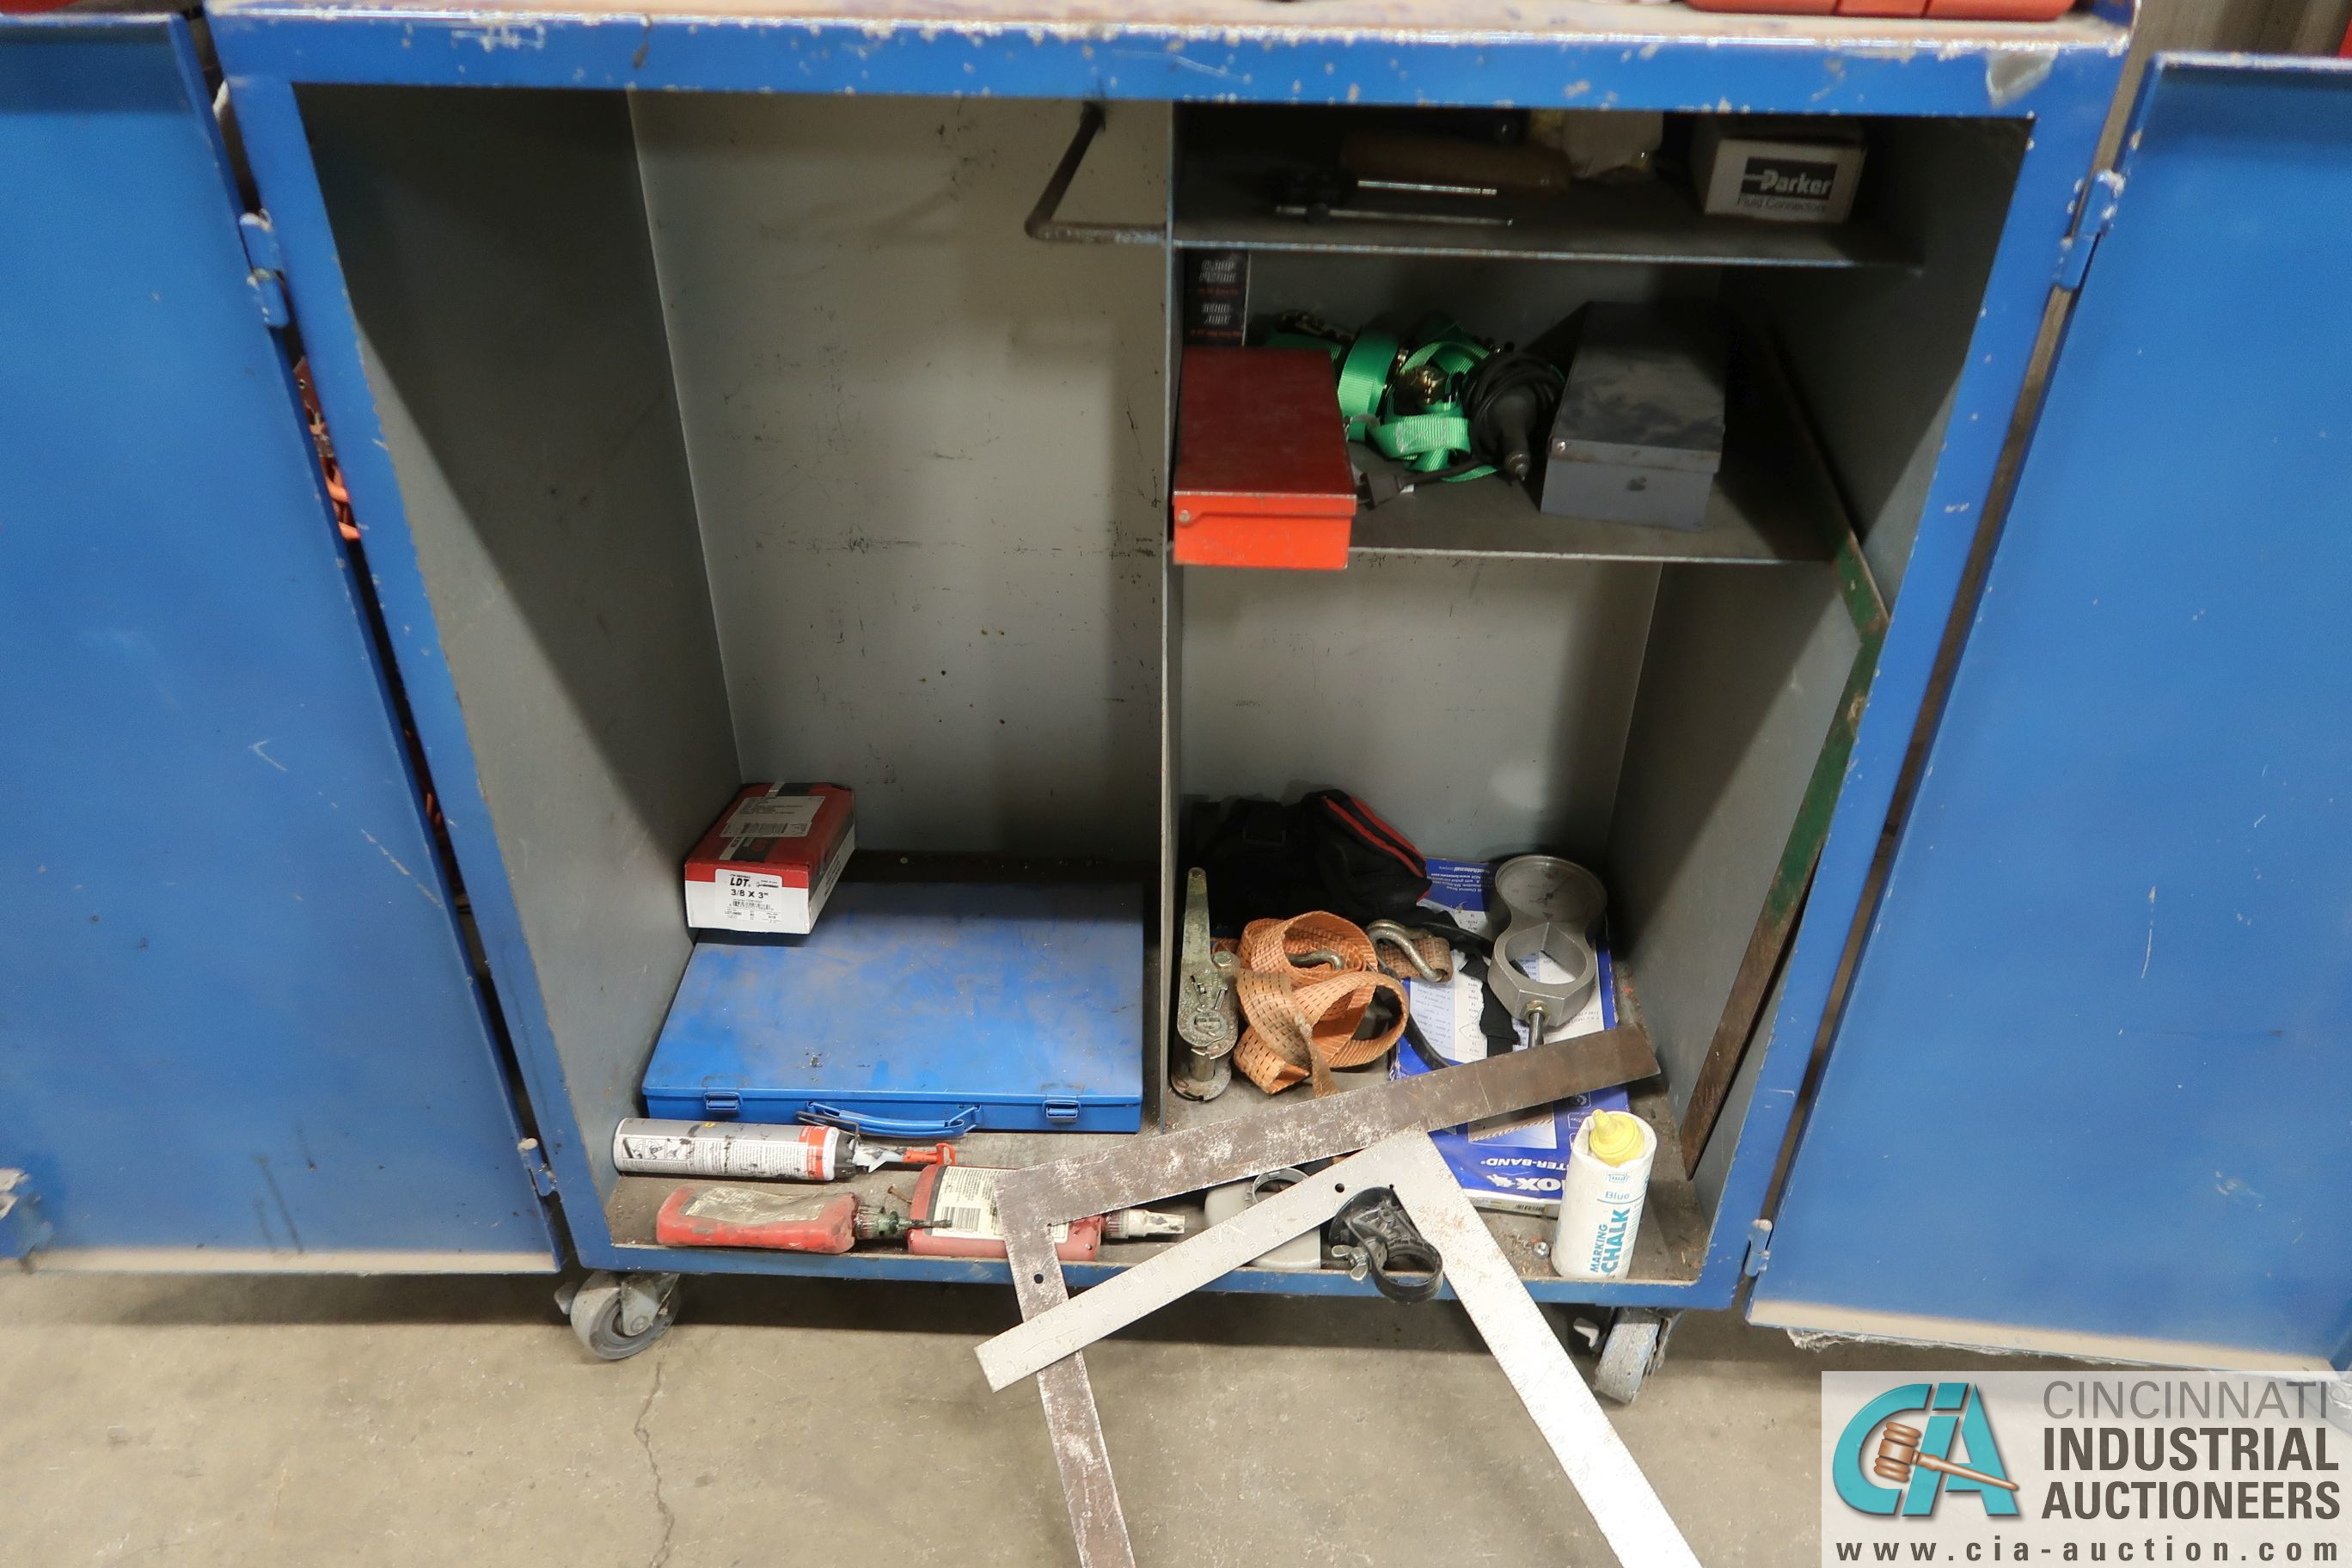 (LOT) 6-DRAWER TOOL BOX WITH PORTABLE 2-DOOR CABINET AND TOOLS - Image 7 of 7